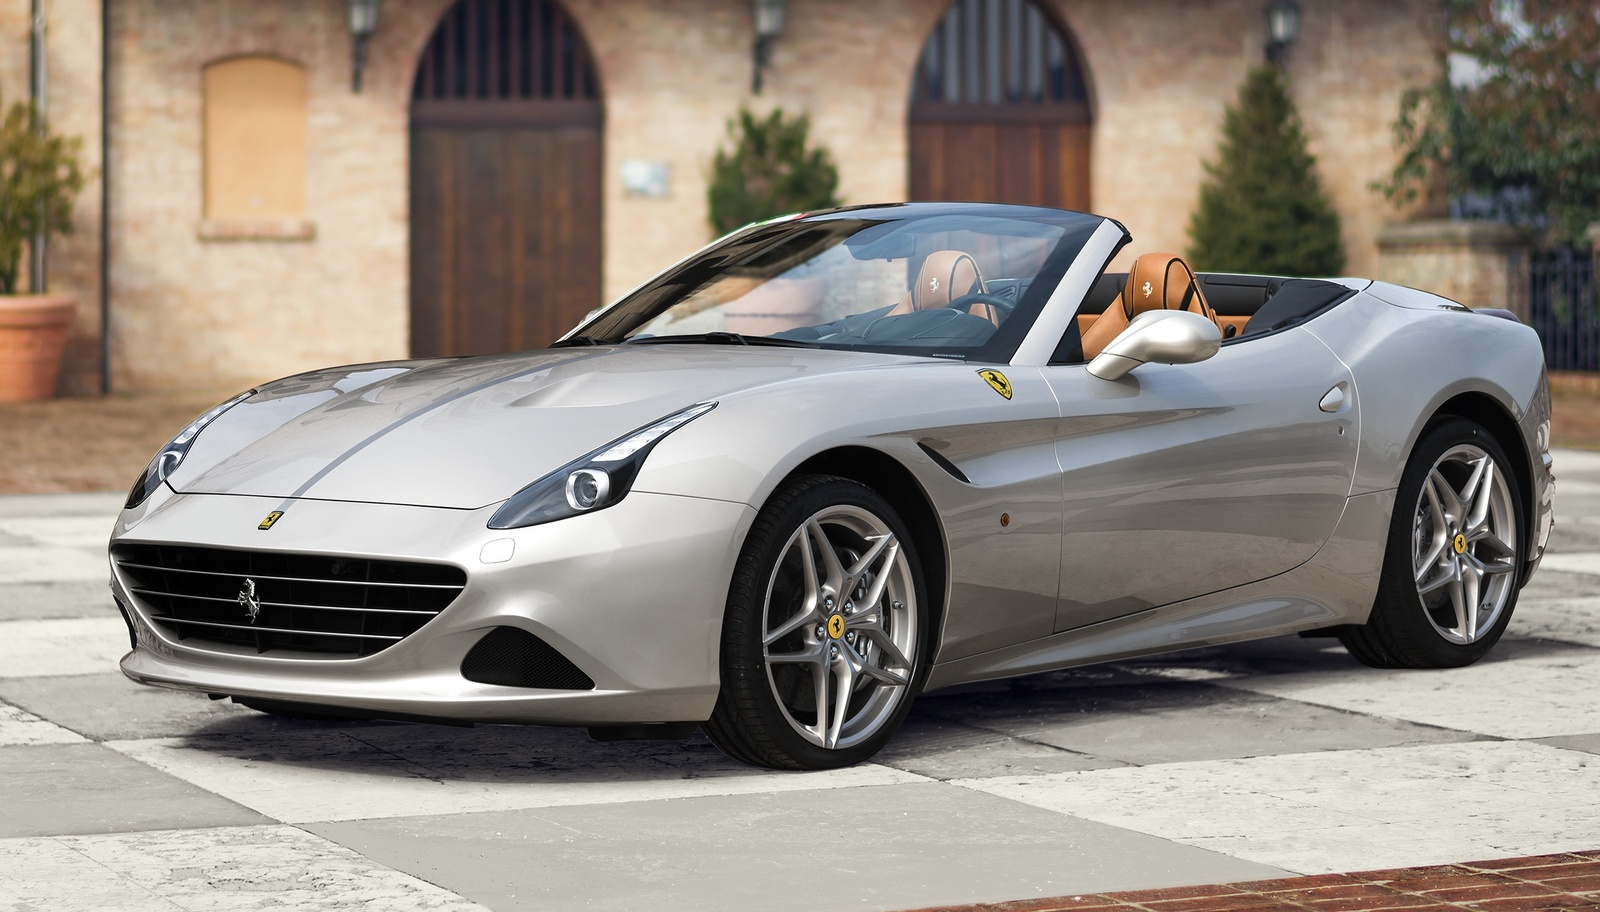 2015 ferrari california 33 - photo #32